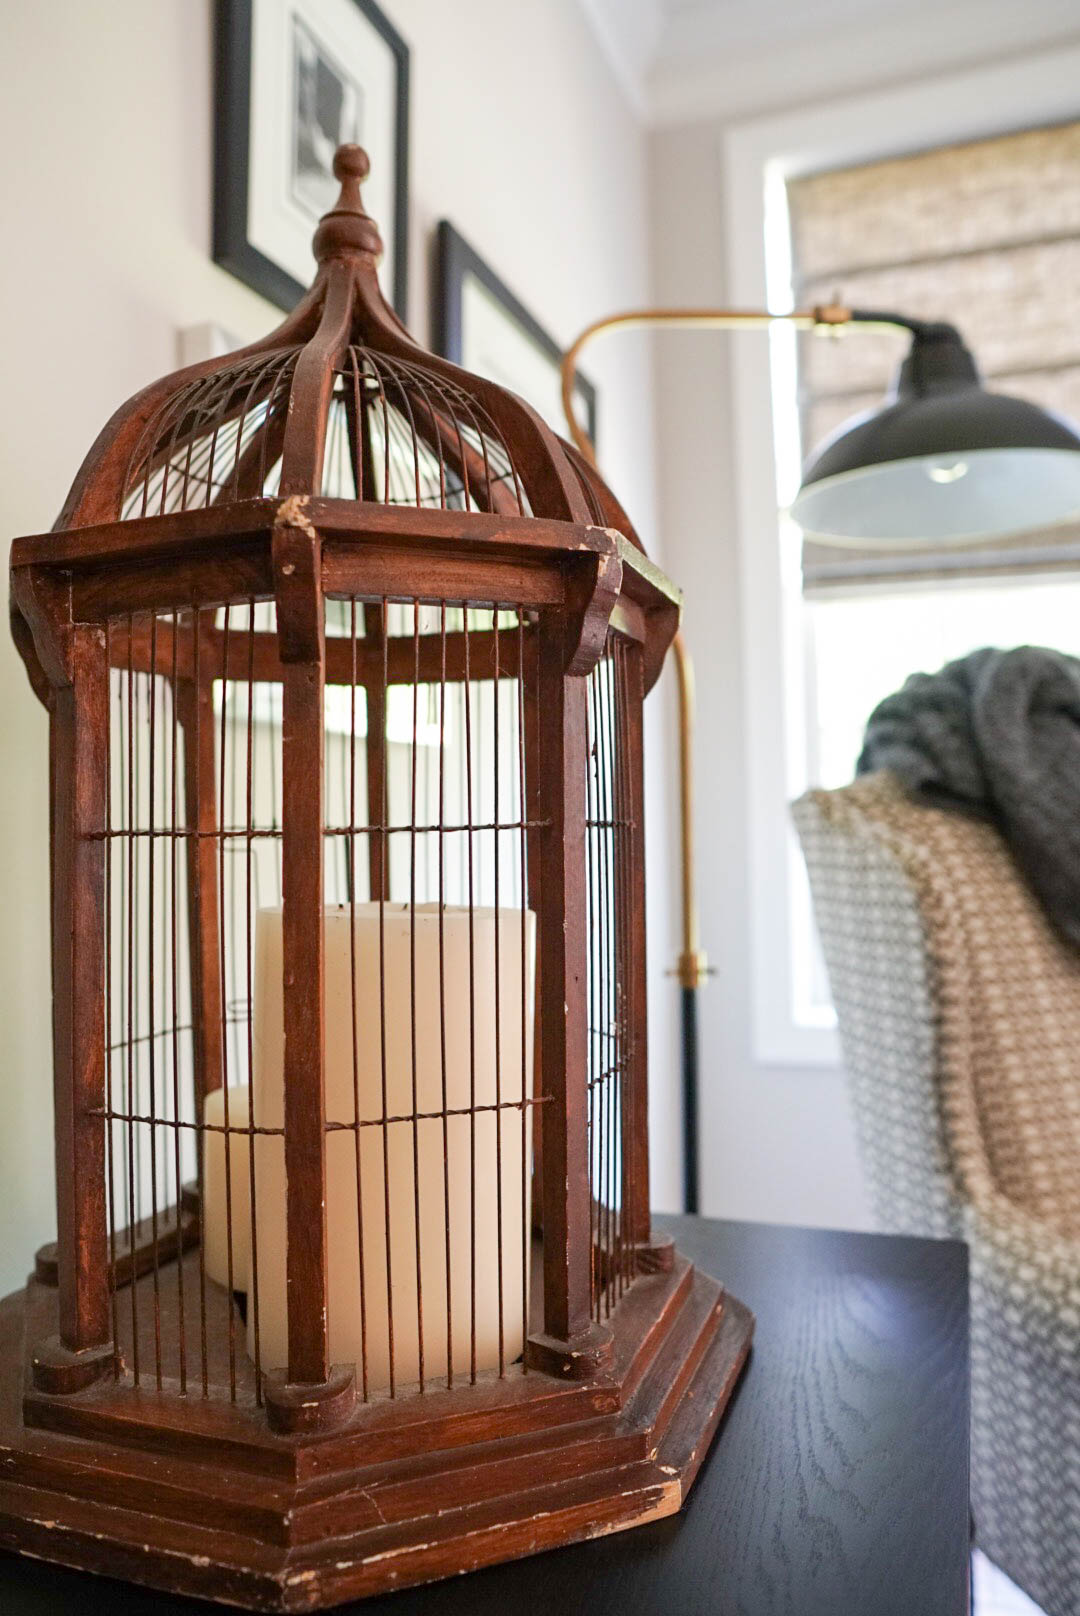 Vintage birdcage adds balance, texture and interest on our media console.